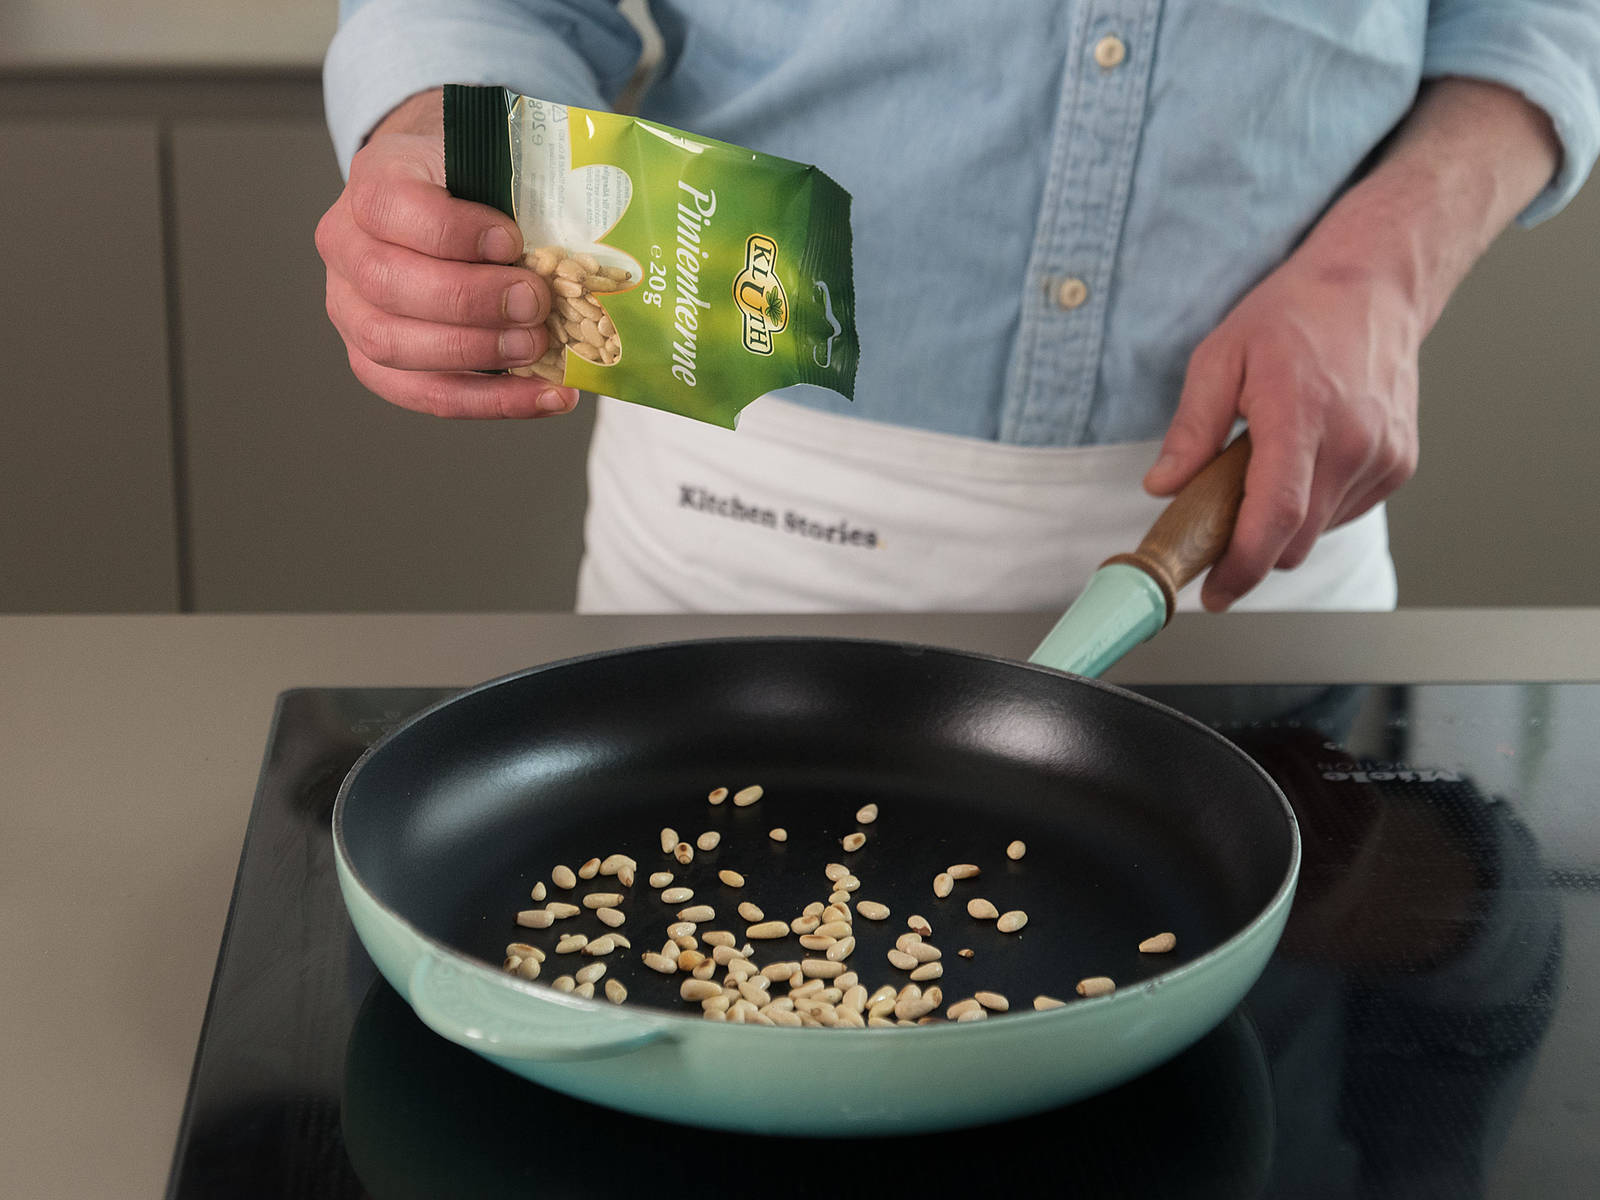 Toast pine nuts in a small frying pan for approx. 3 – 4 min. on medium-low heat until browned.